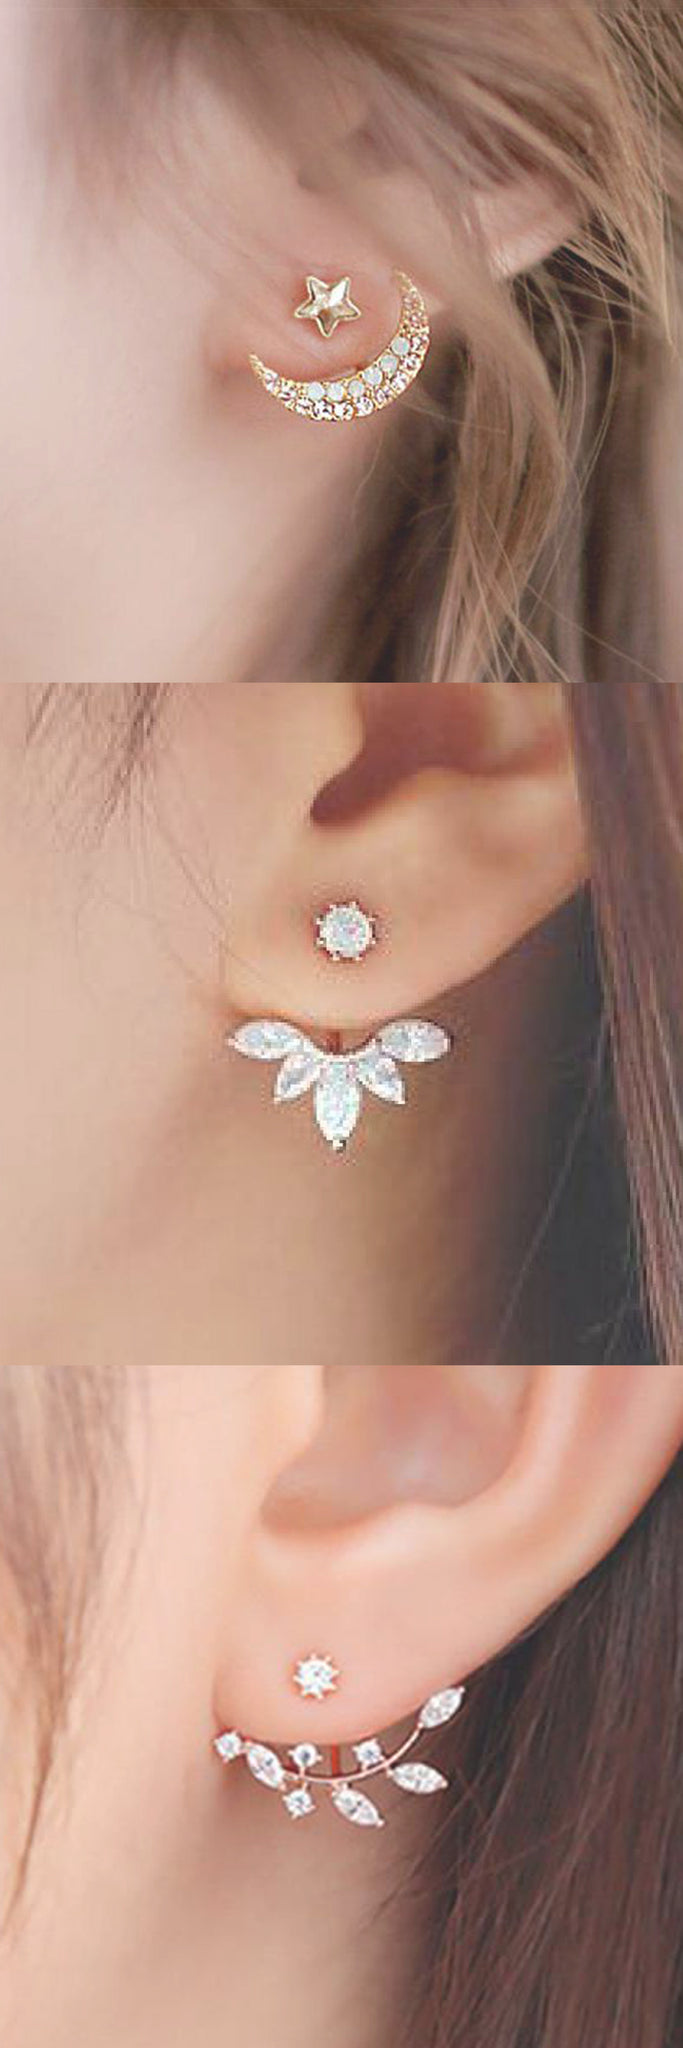 Elegant Lobe Ear Piercing Ideas at MyBodiArt.com - Ear Jacket Earrings